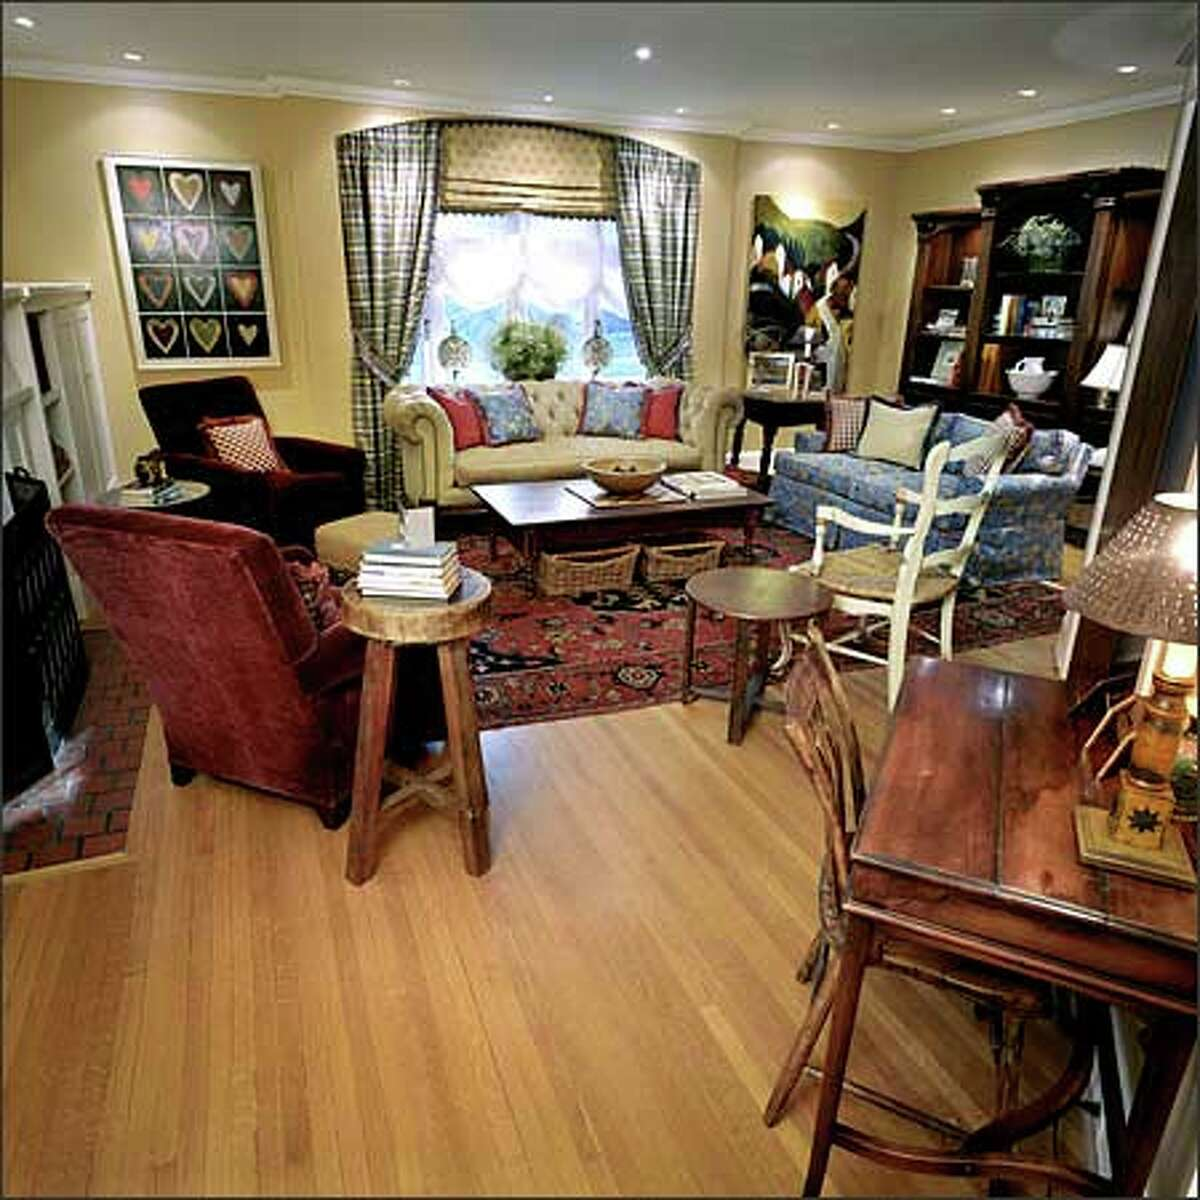 To accommodate more people in this combination family room and entertaining area, chairs and couches have been added and arranged in conversational groupings. Along the back wall, a tall bookcase holds books, photo albums and memorabilia and functions as a small library.